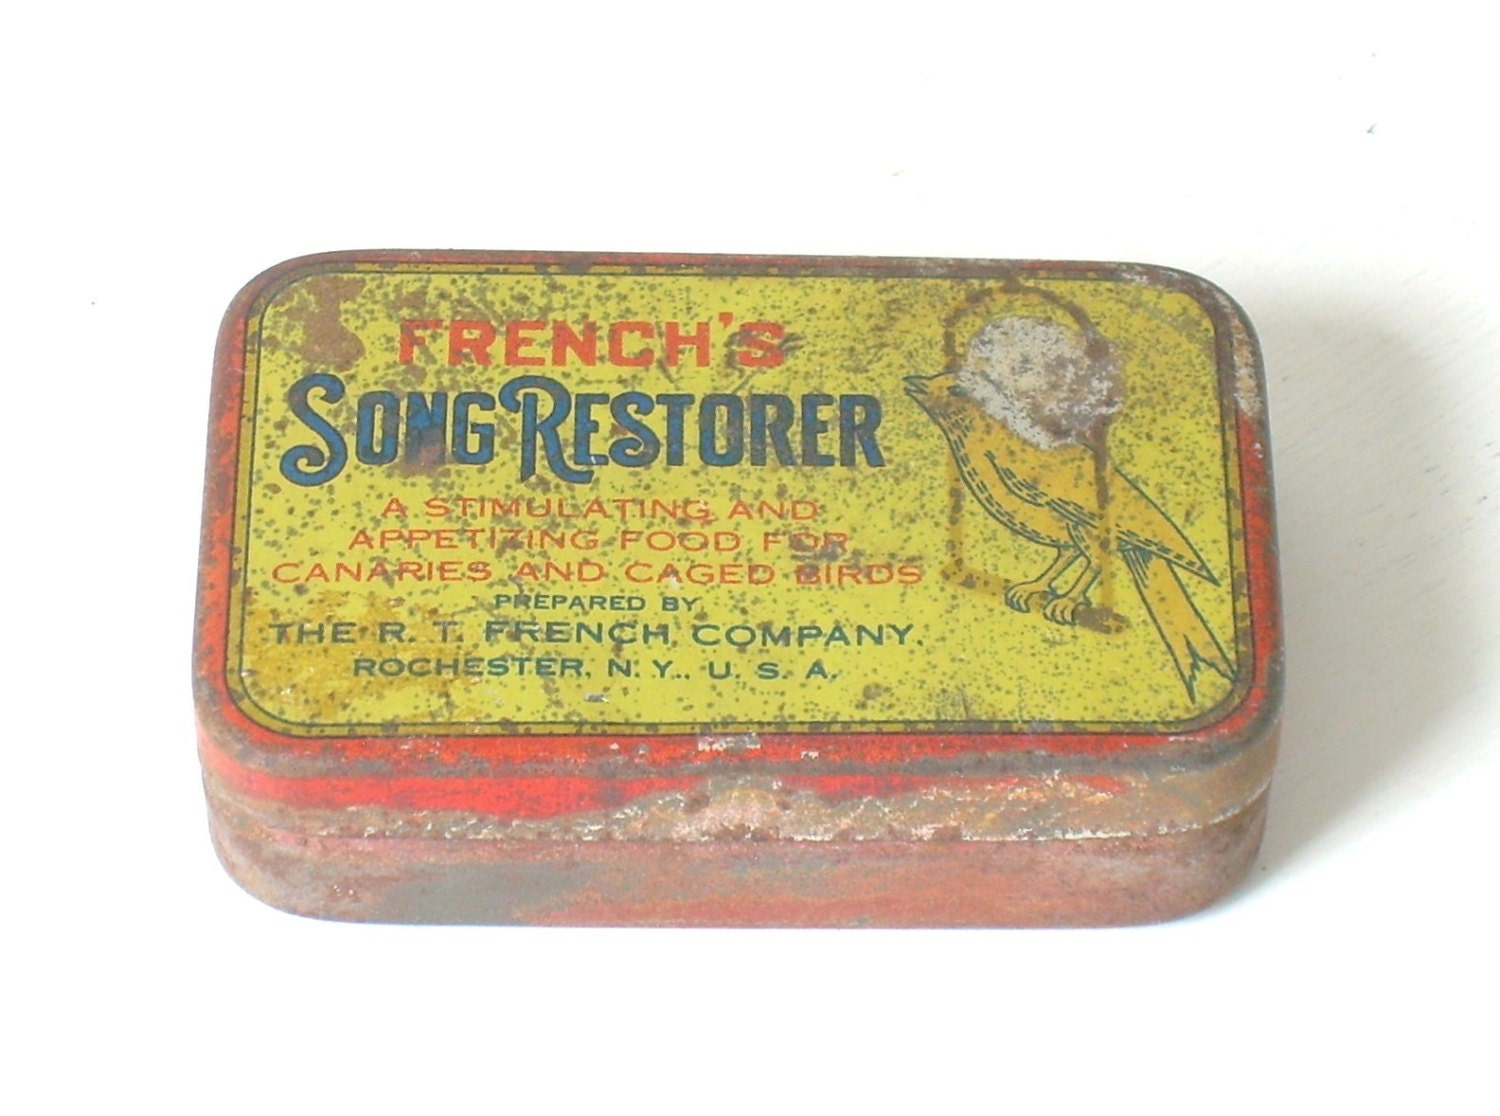 Vintage french 39 s song restorer bird food tin for Bird feed tin